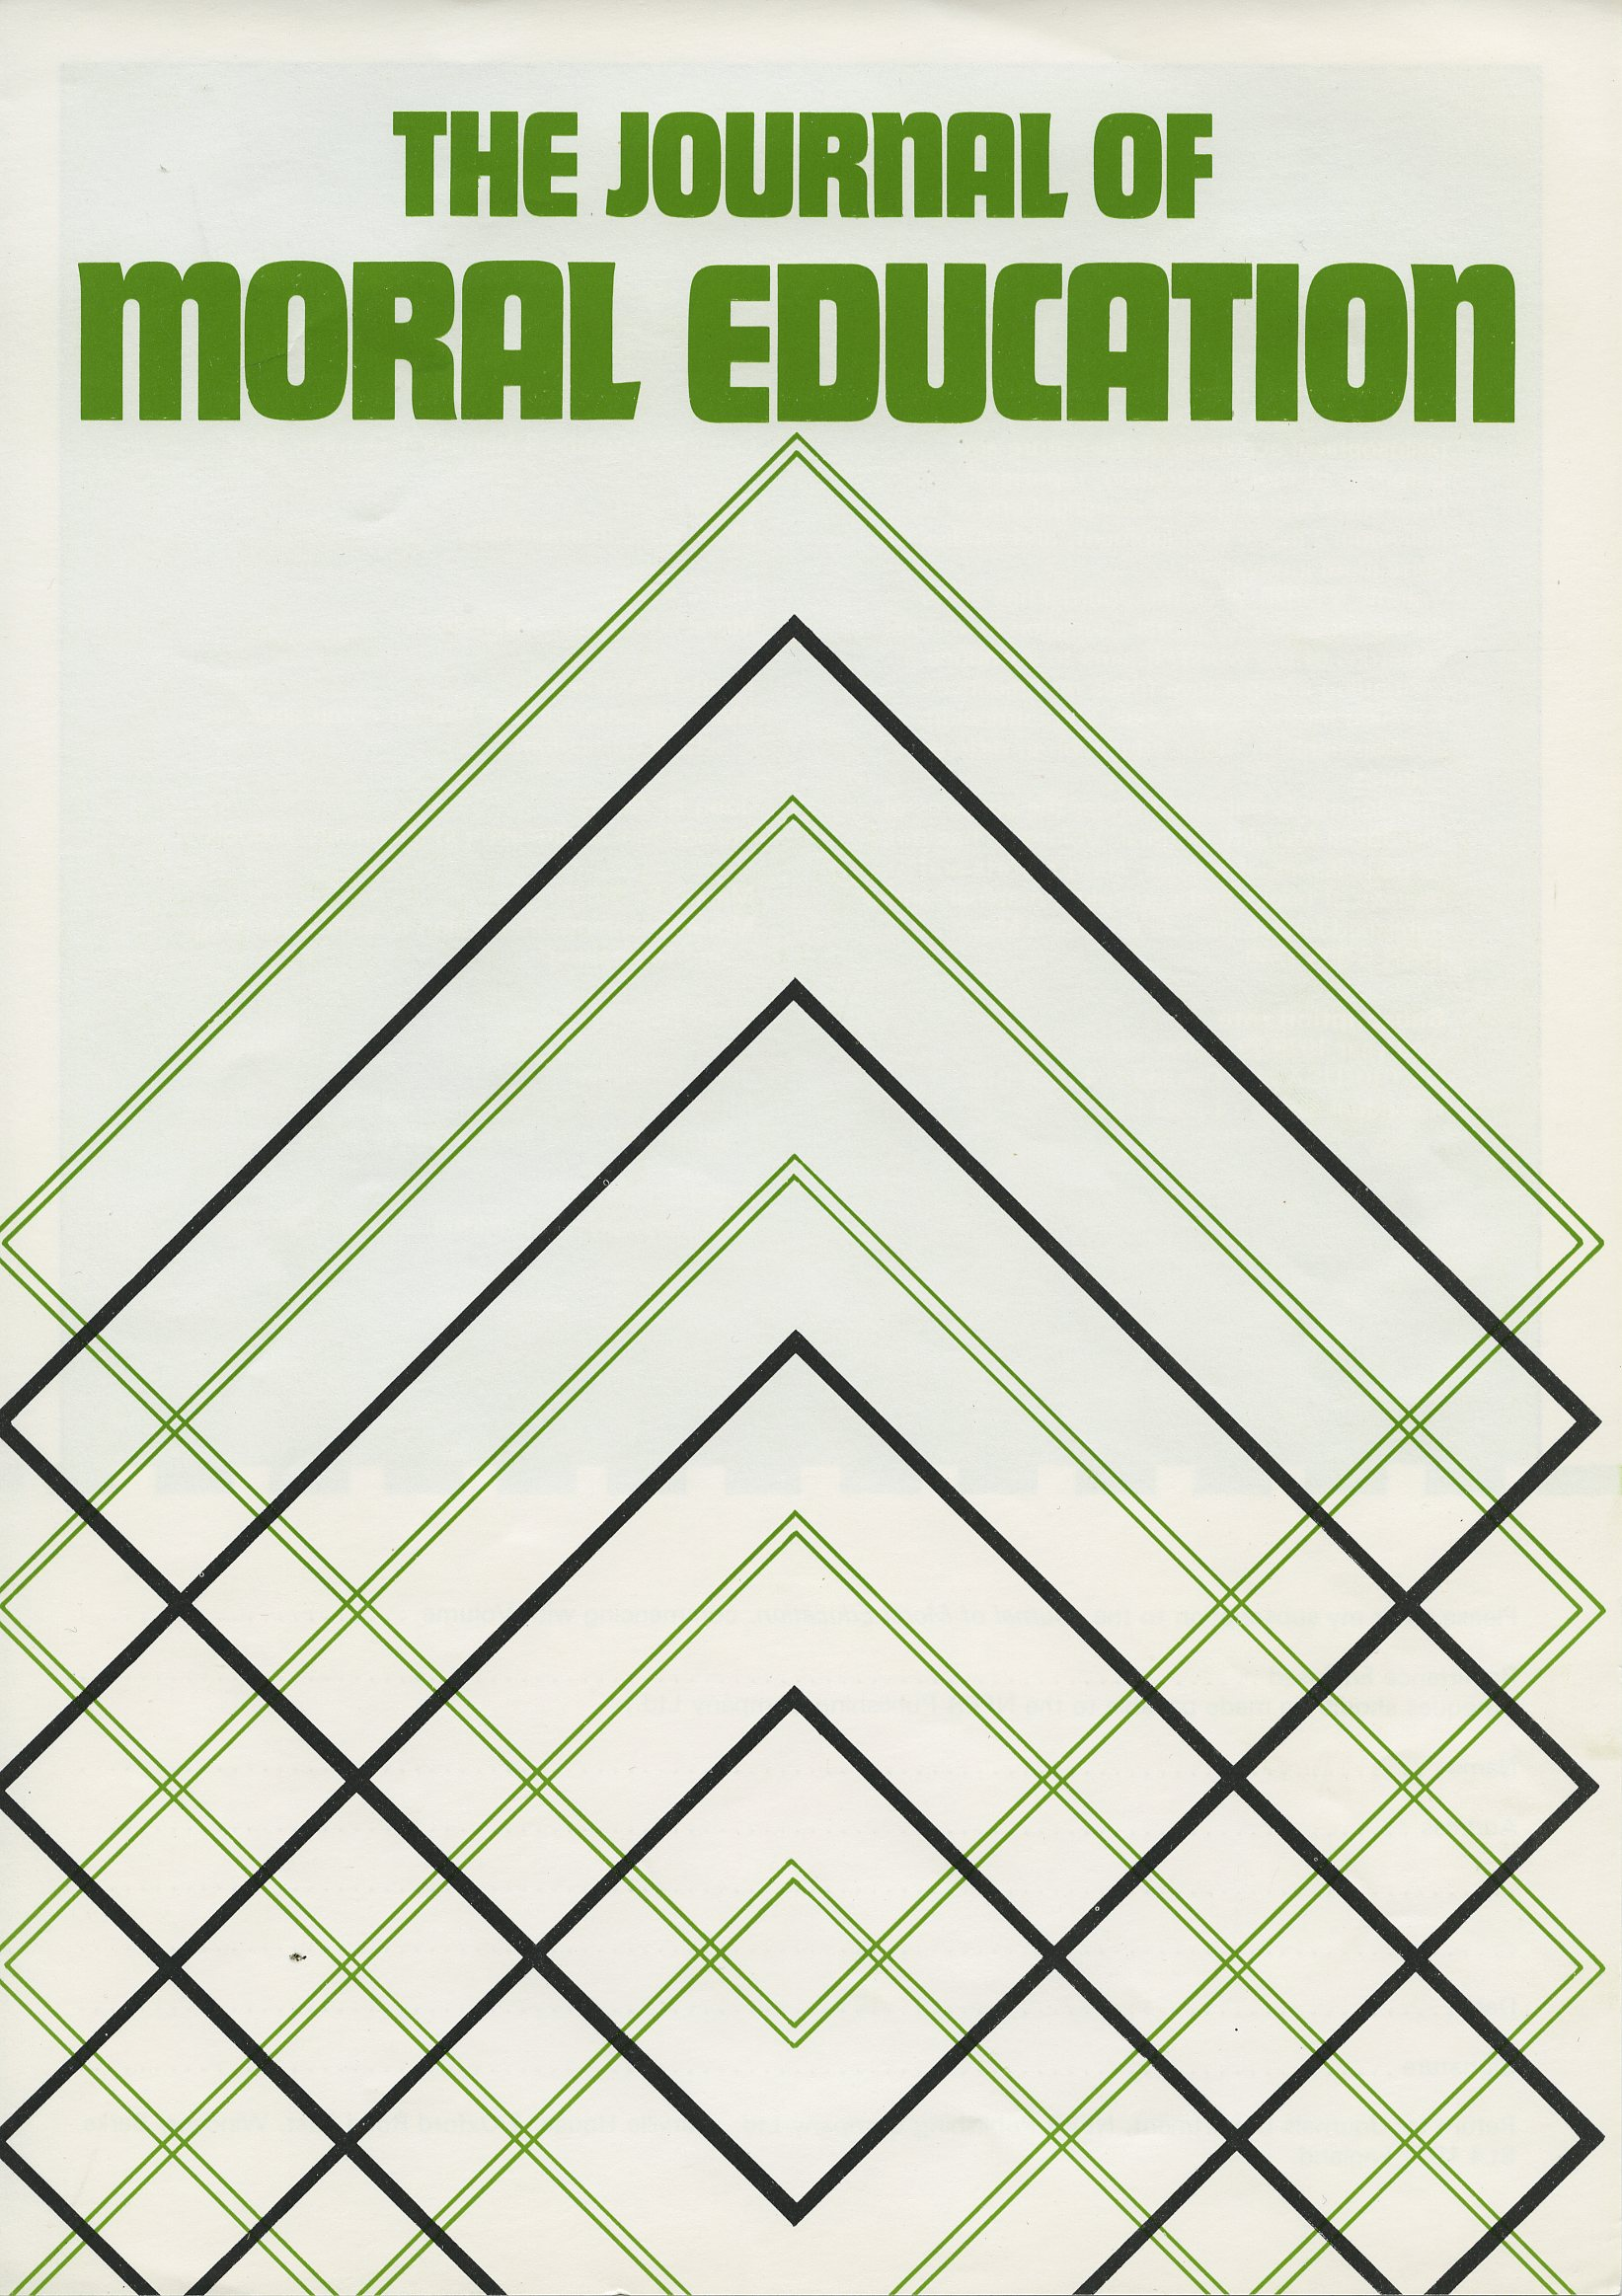 Front cover of the Journal of Moral Education